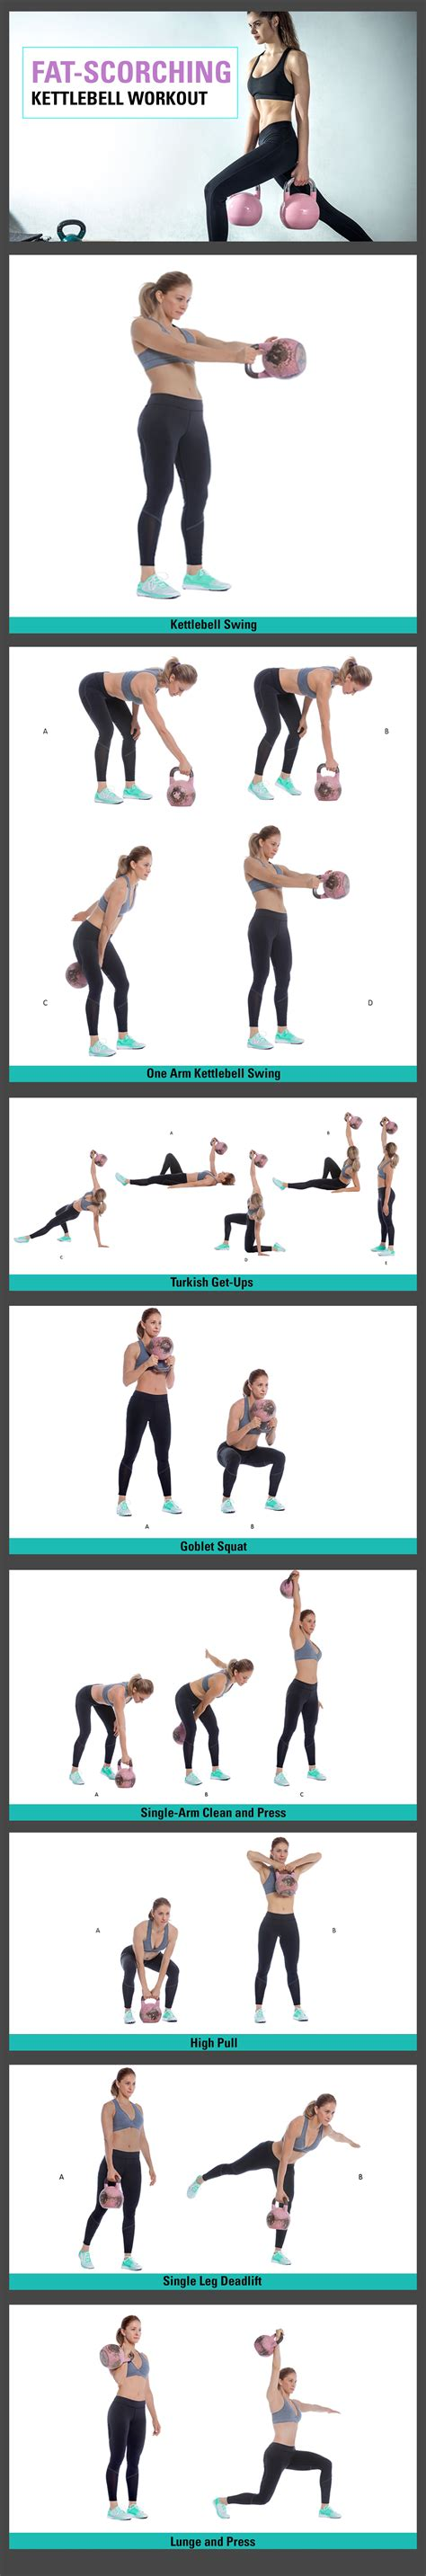 kettlebell fat cardio arm exercises workout wwws fitnessrepublic fitness burning workouts ab lower stomach pit strength training lifting scorching press